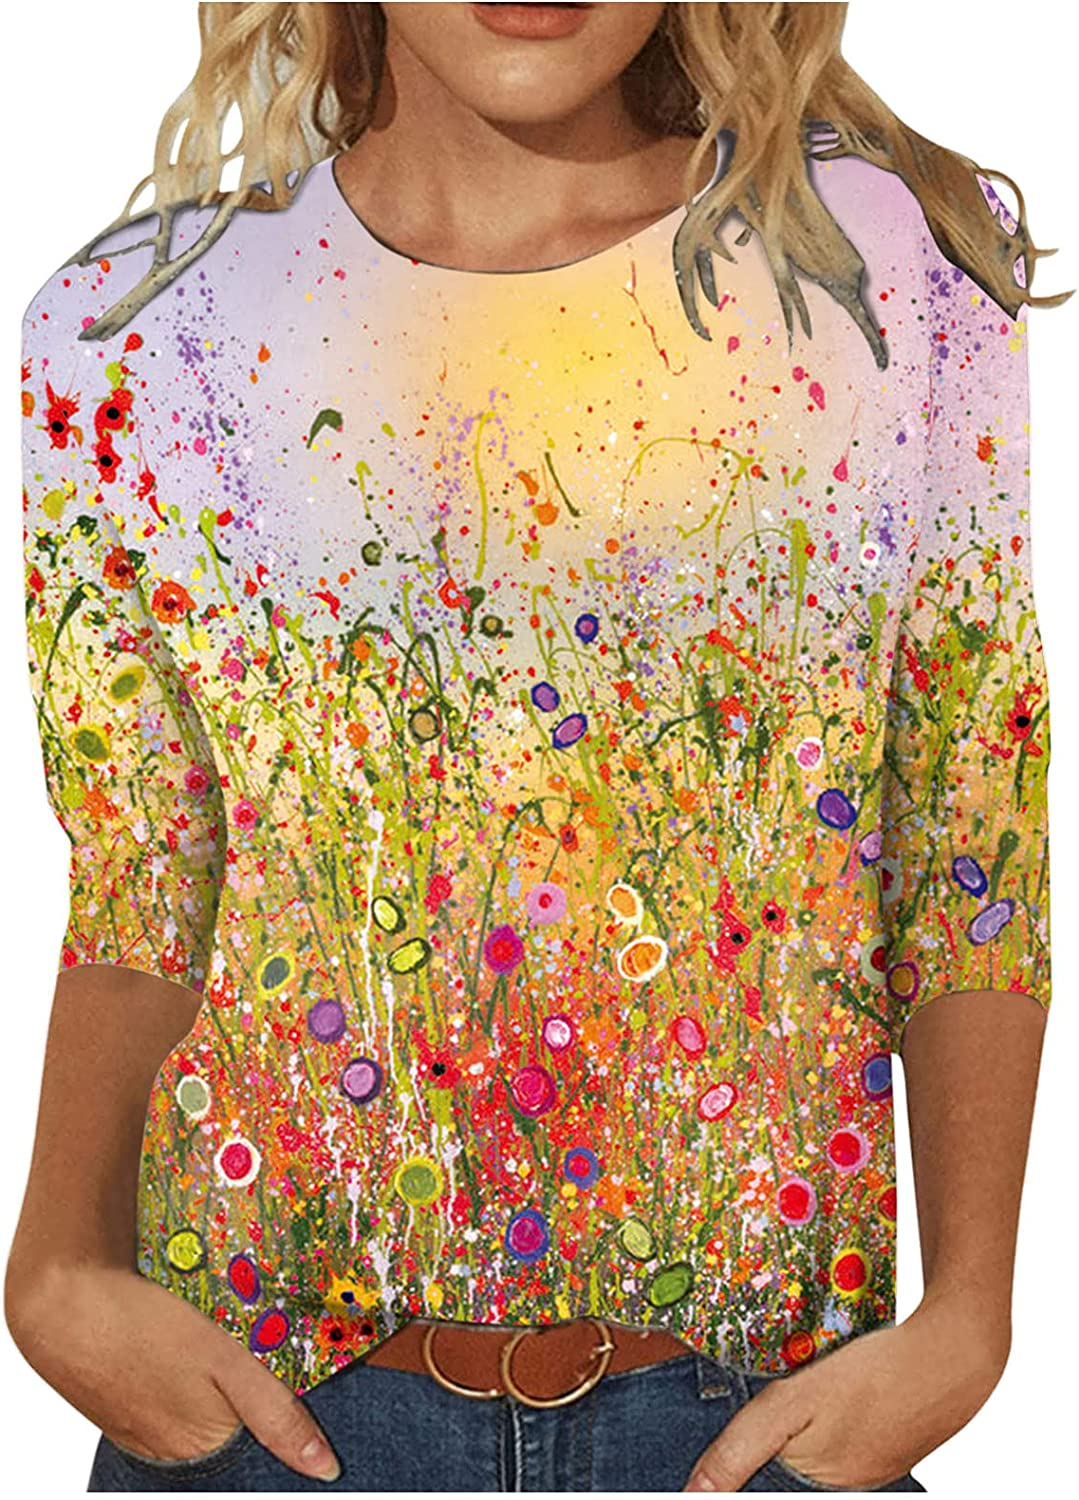 INNOVIERA Long Sleeve Blouses for Women Plus Size,Womens Floral Neck Sweatshirt Slouchy Casual Loose Tops Shirts Tunic Tees